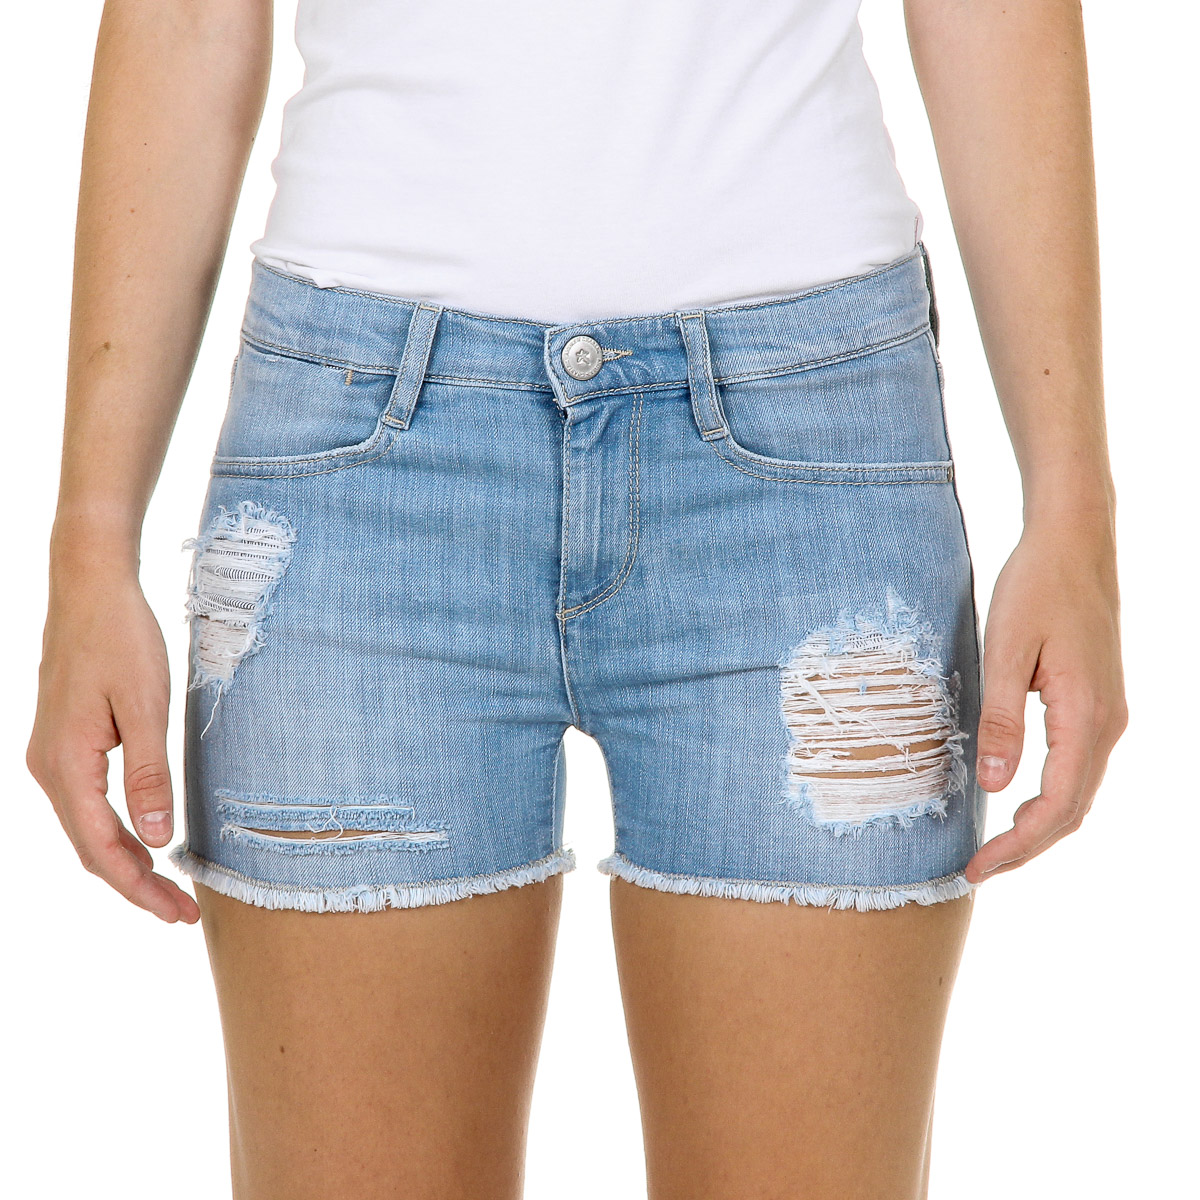 Primary image for Andrew Charles Womens Shorts Denim VERGINIA